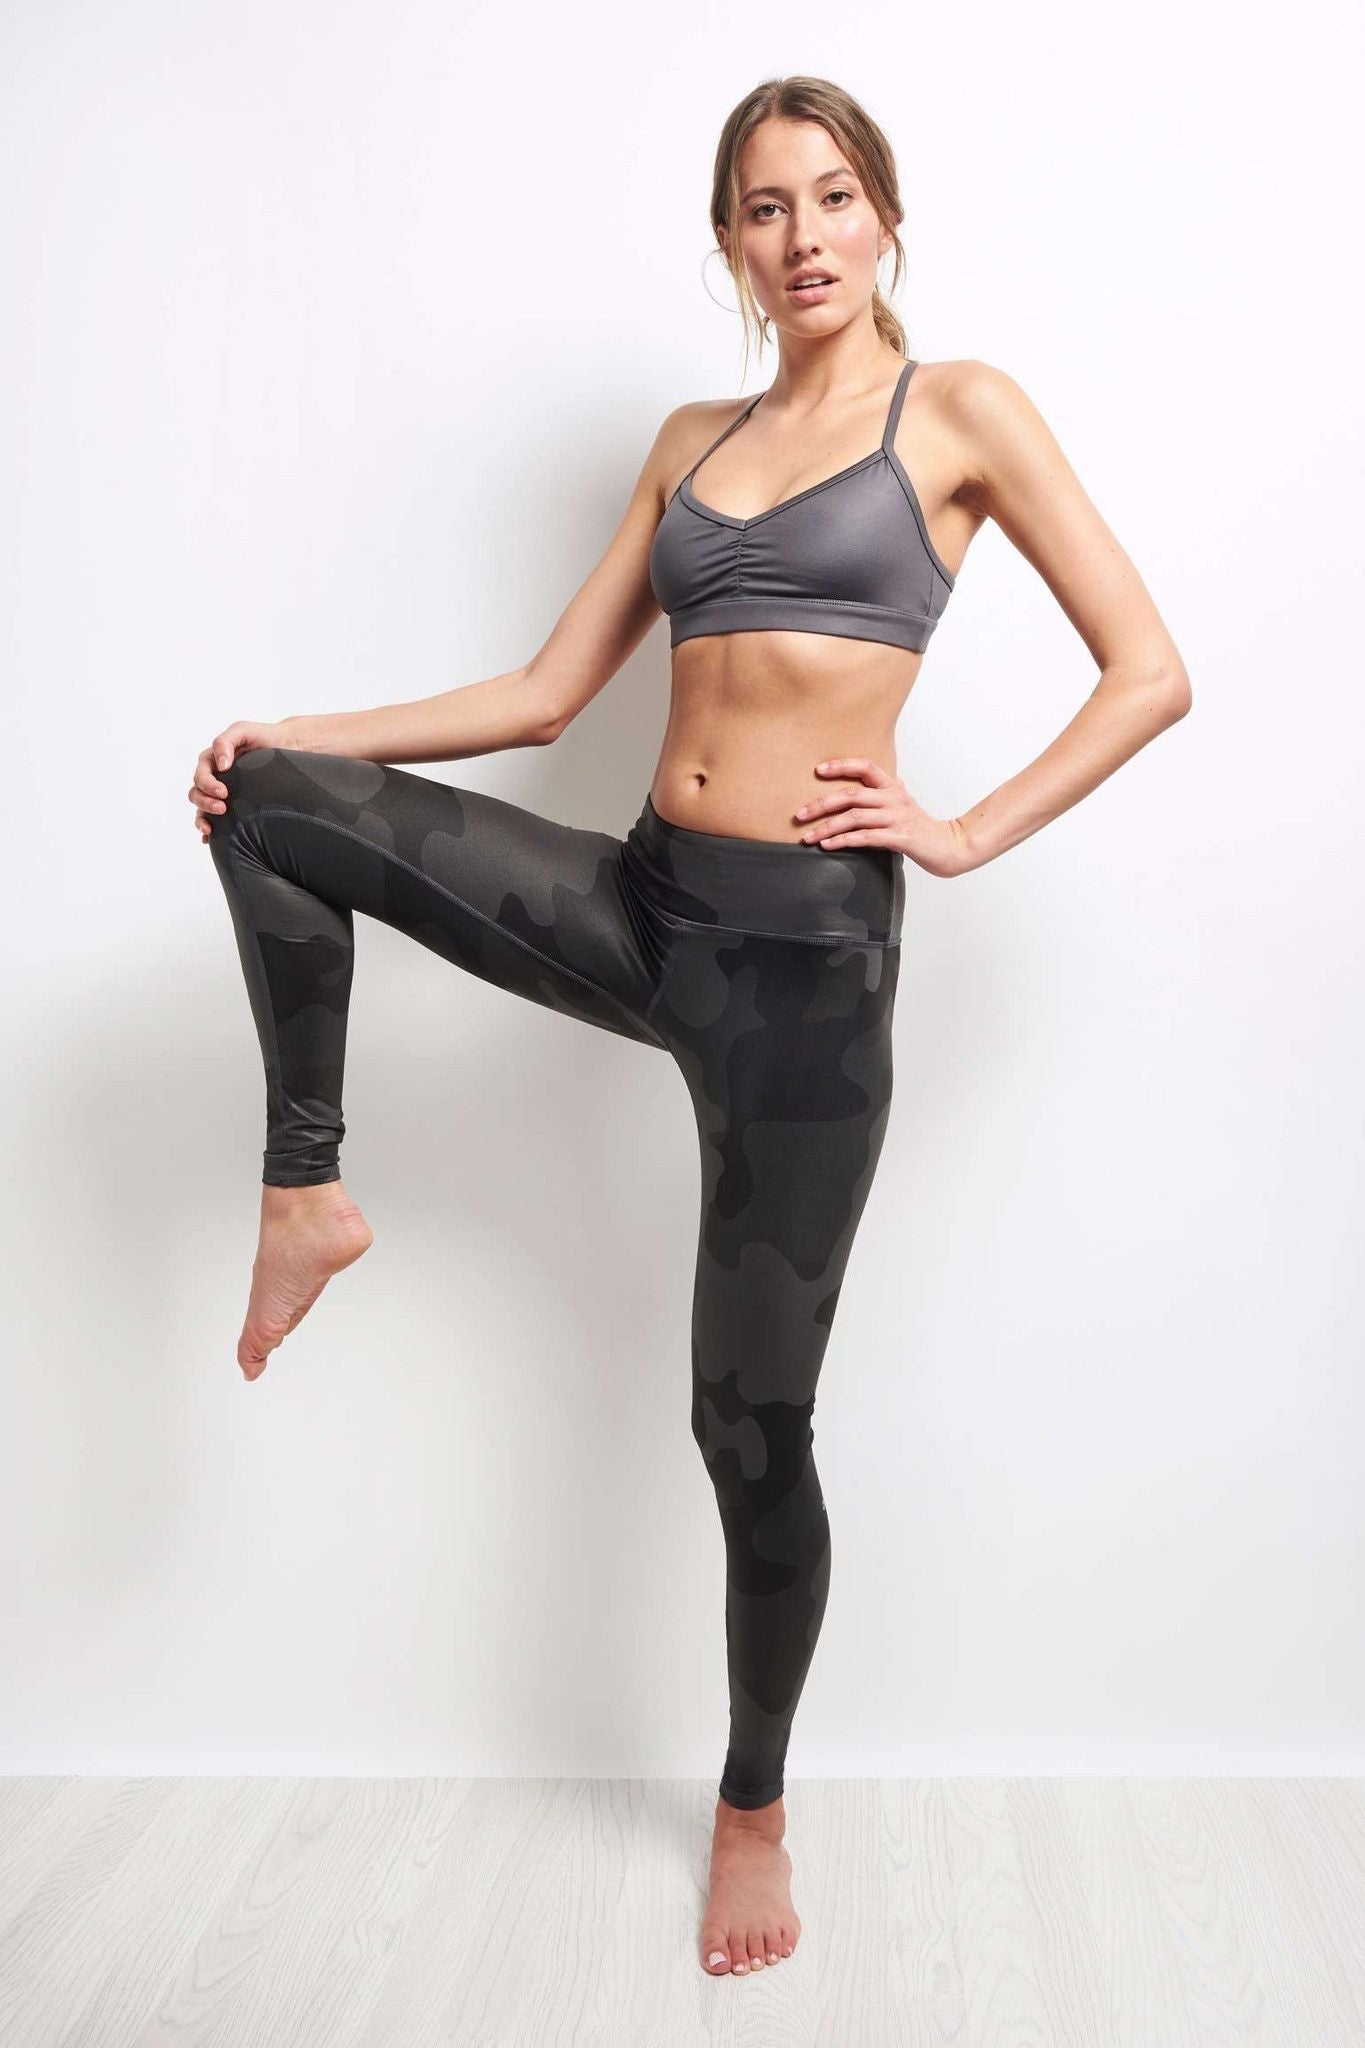 Alo Yoga Airbrush Legging - Black Camo image 2 - The Sports Edit